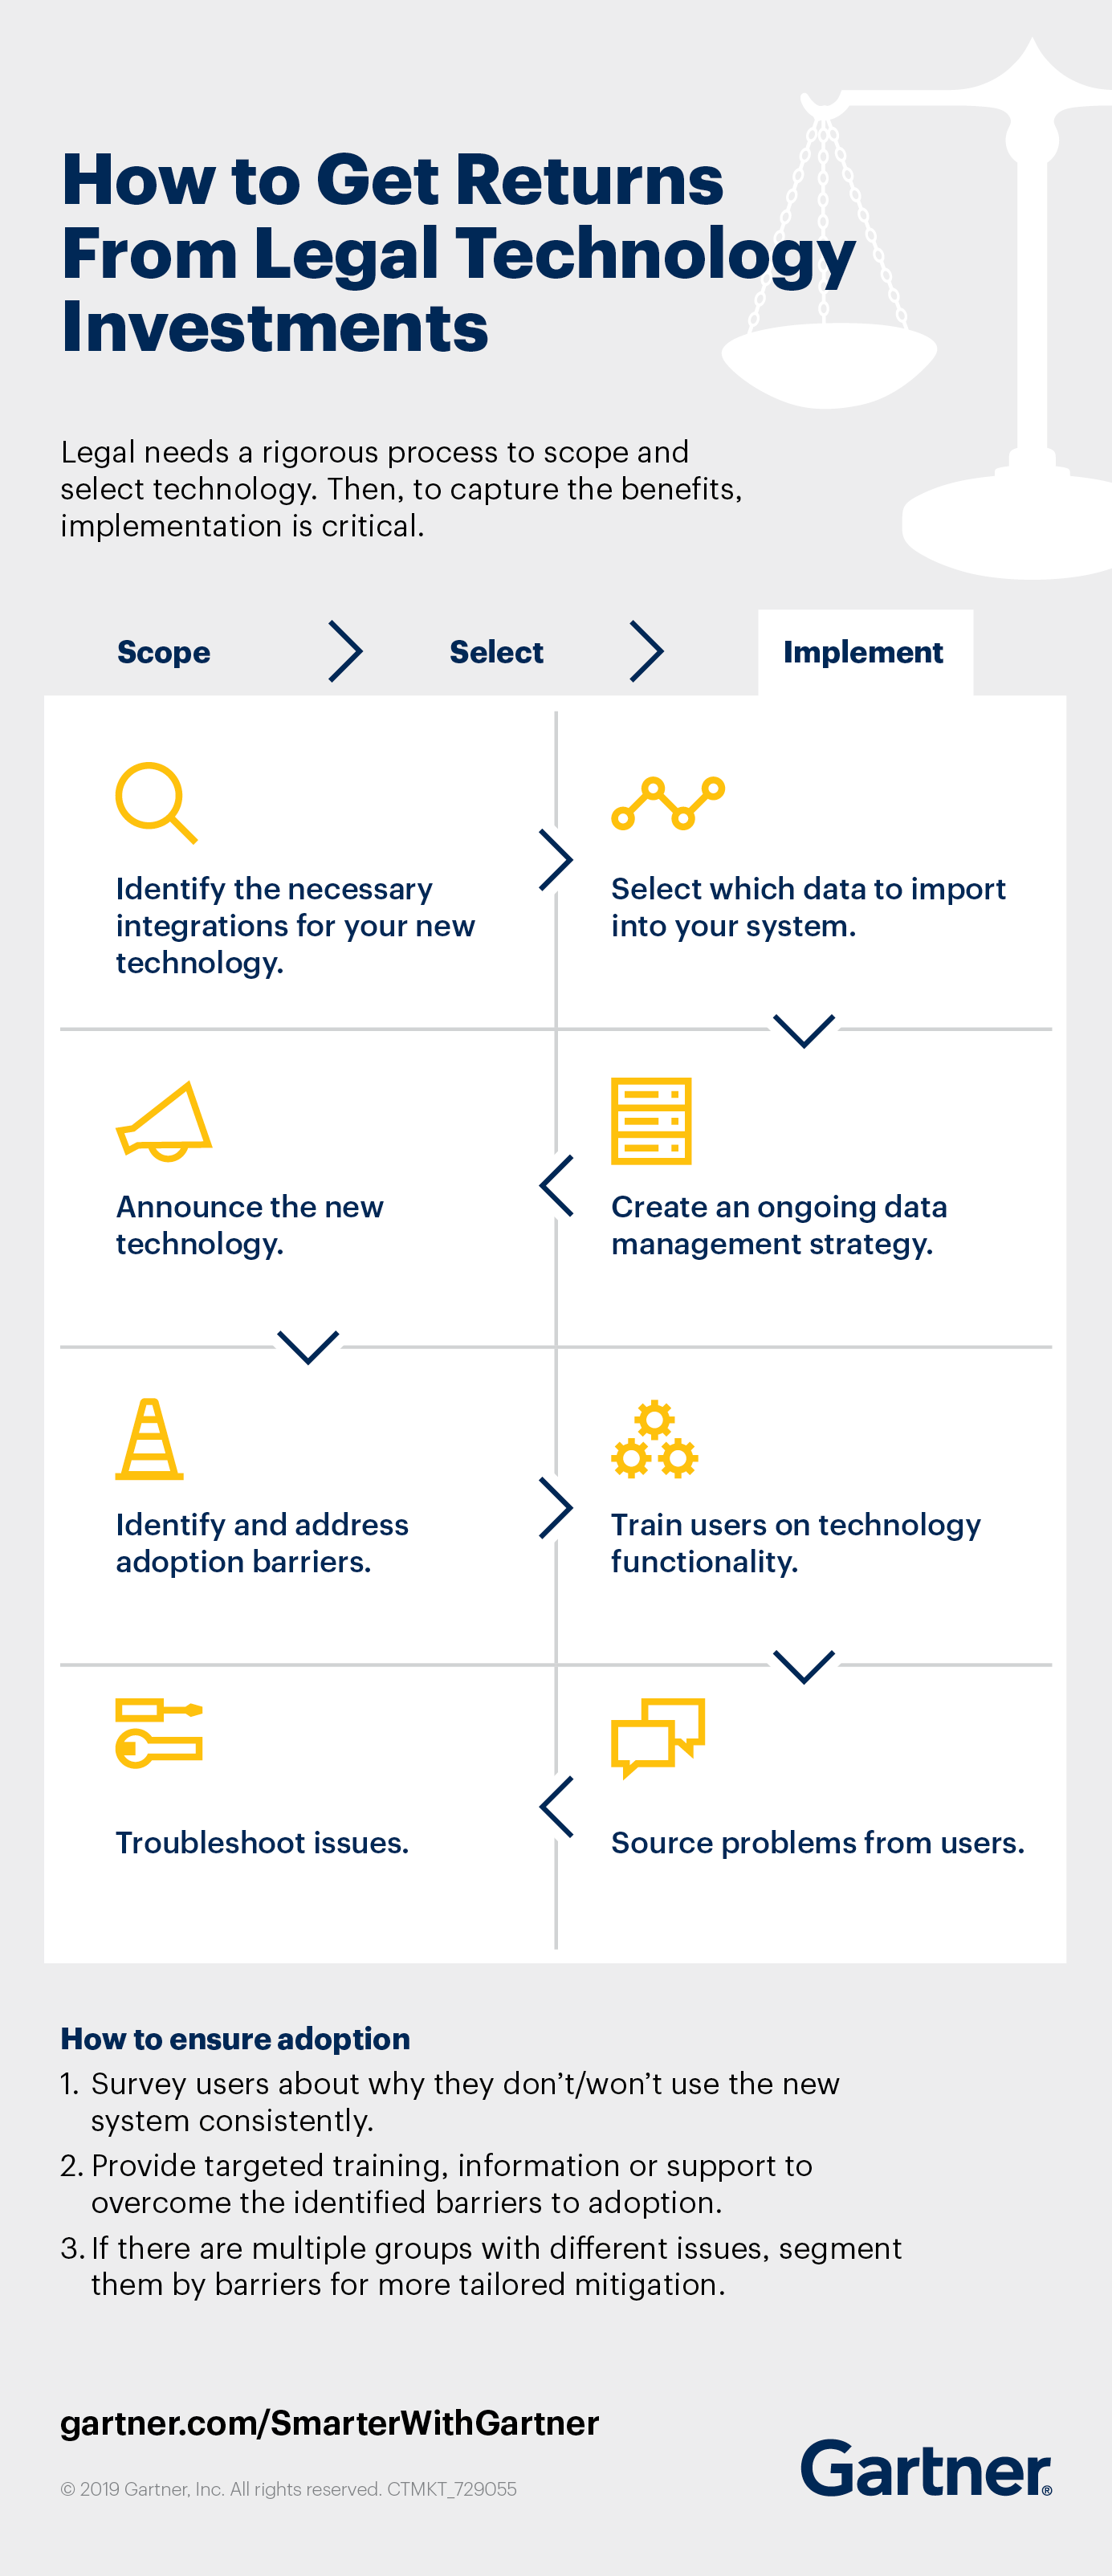 How to Get Returns From Legal Technology Investments